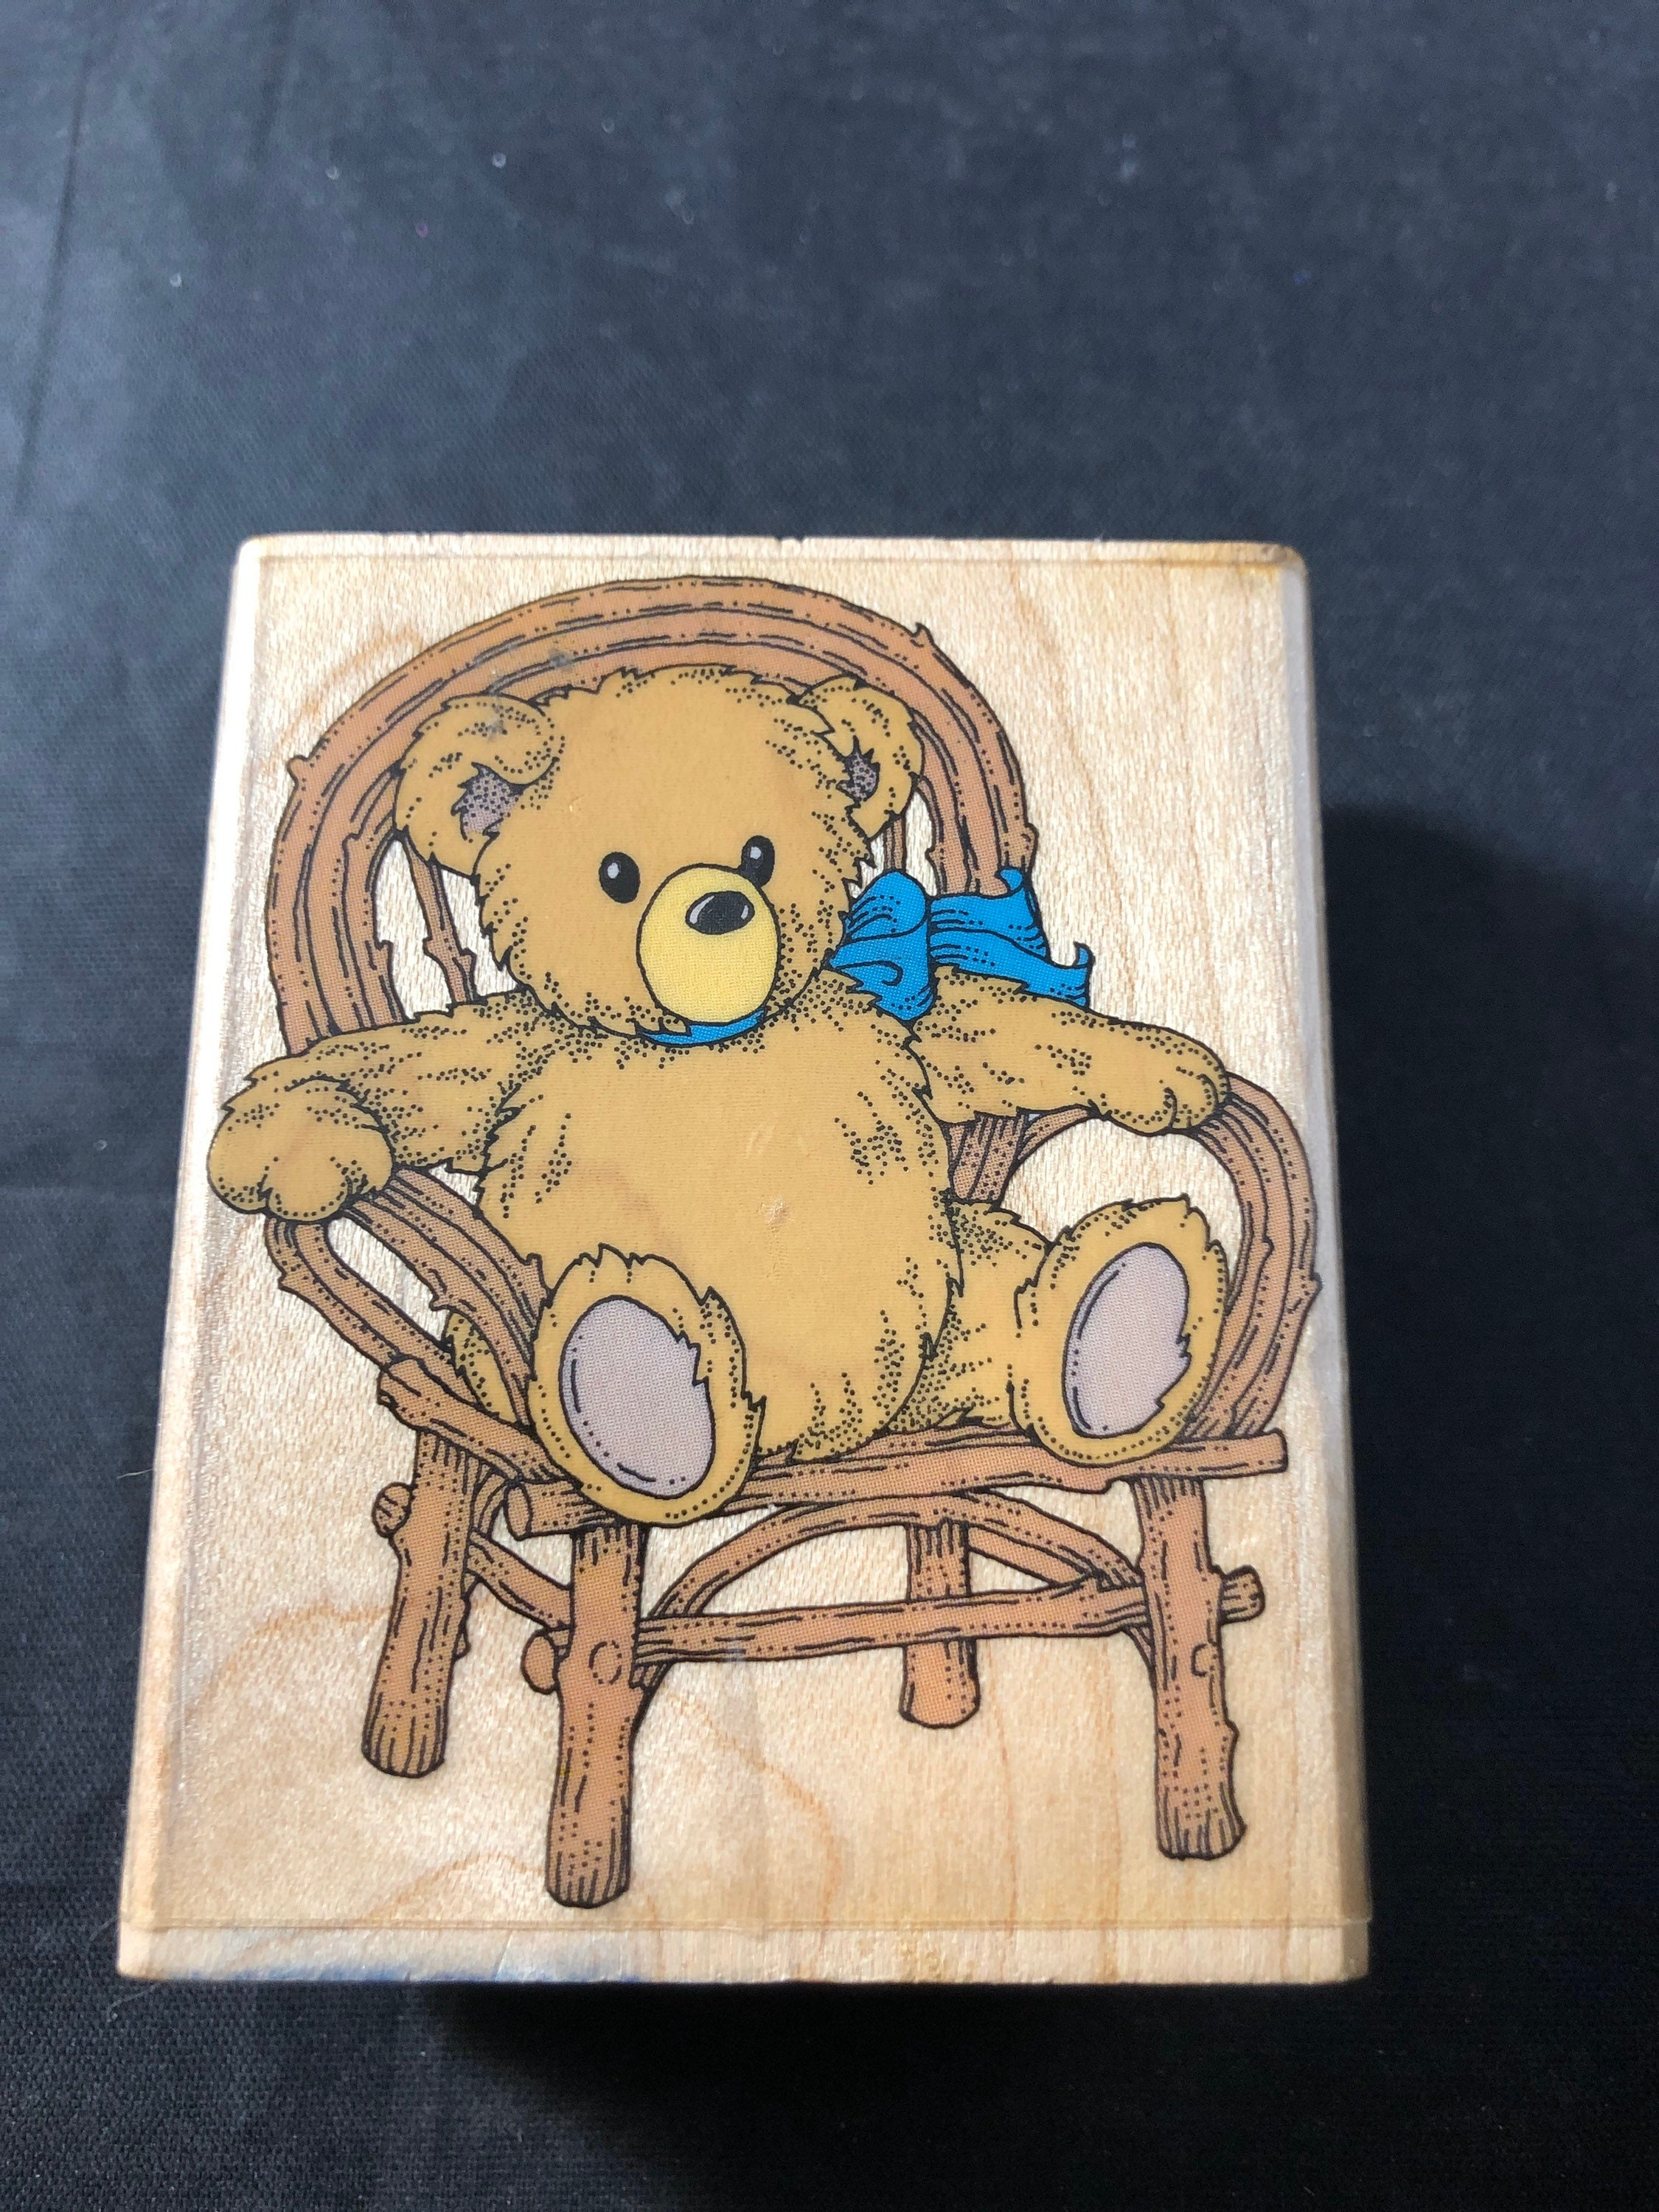 Used To From Rubber Stamps View All Photos